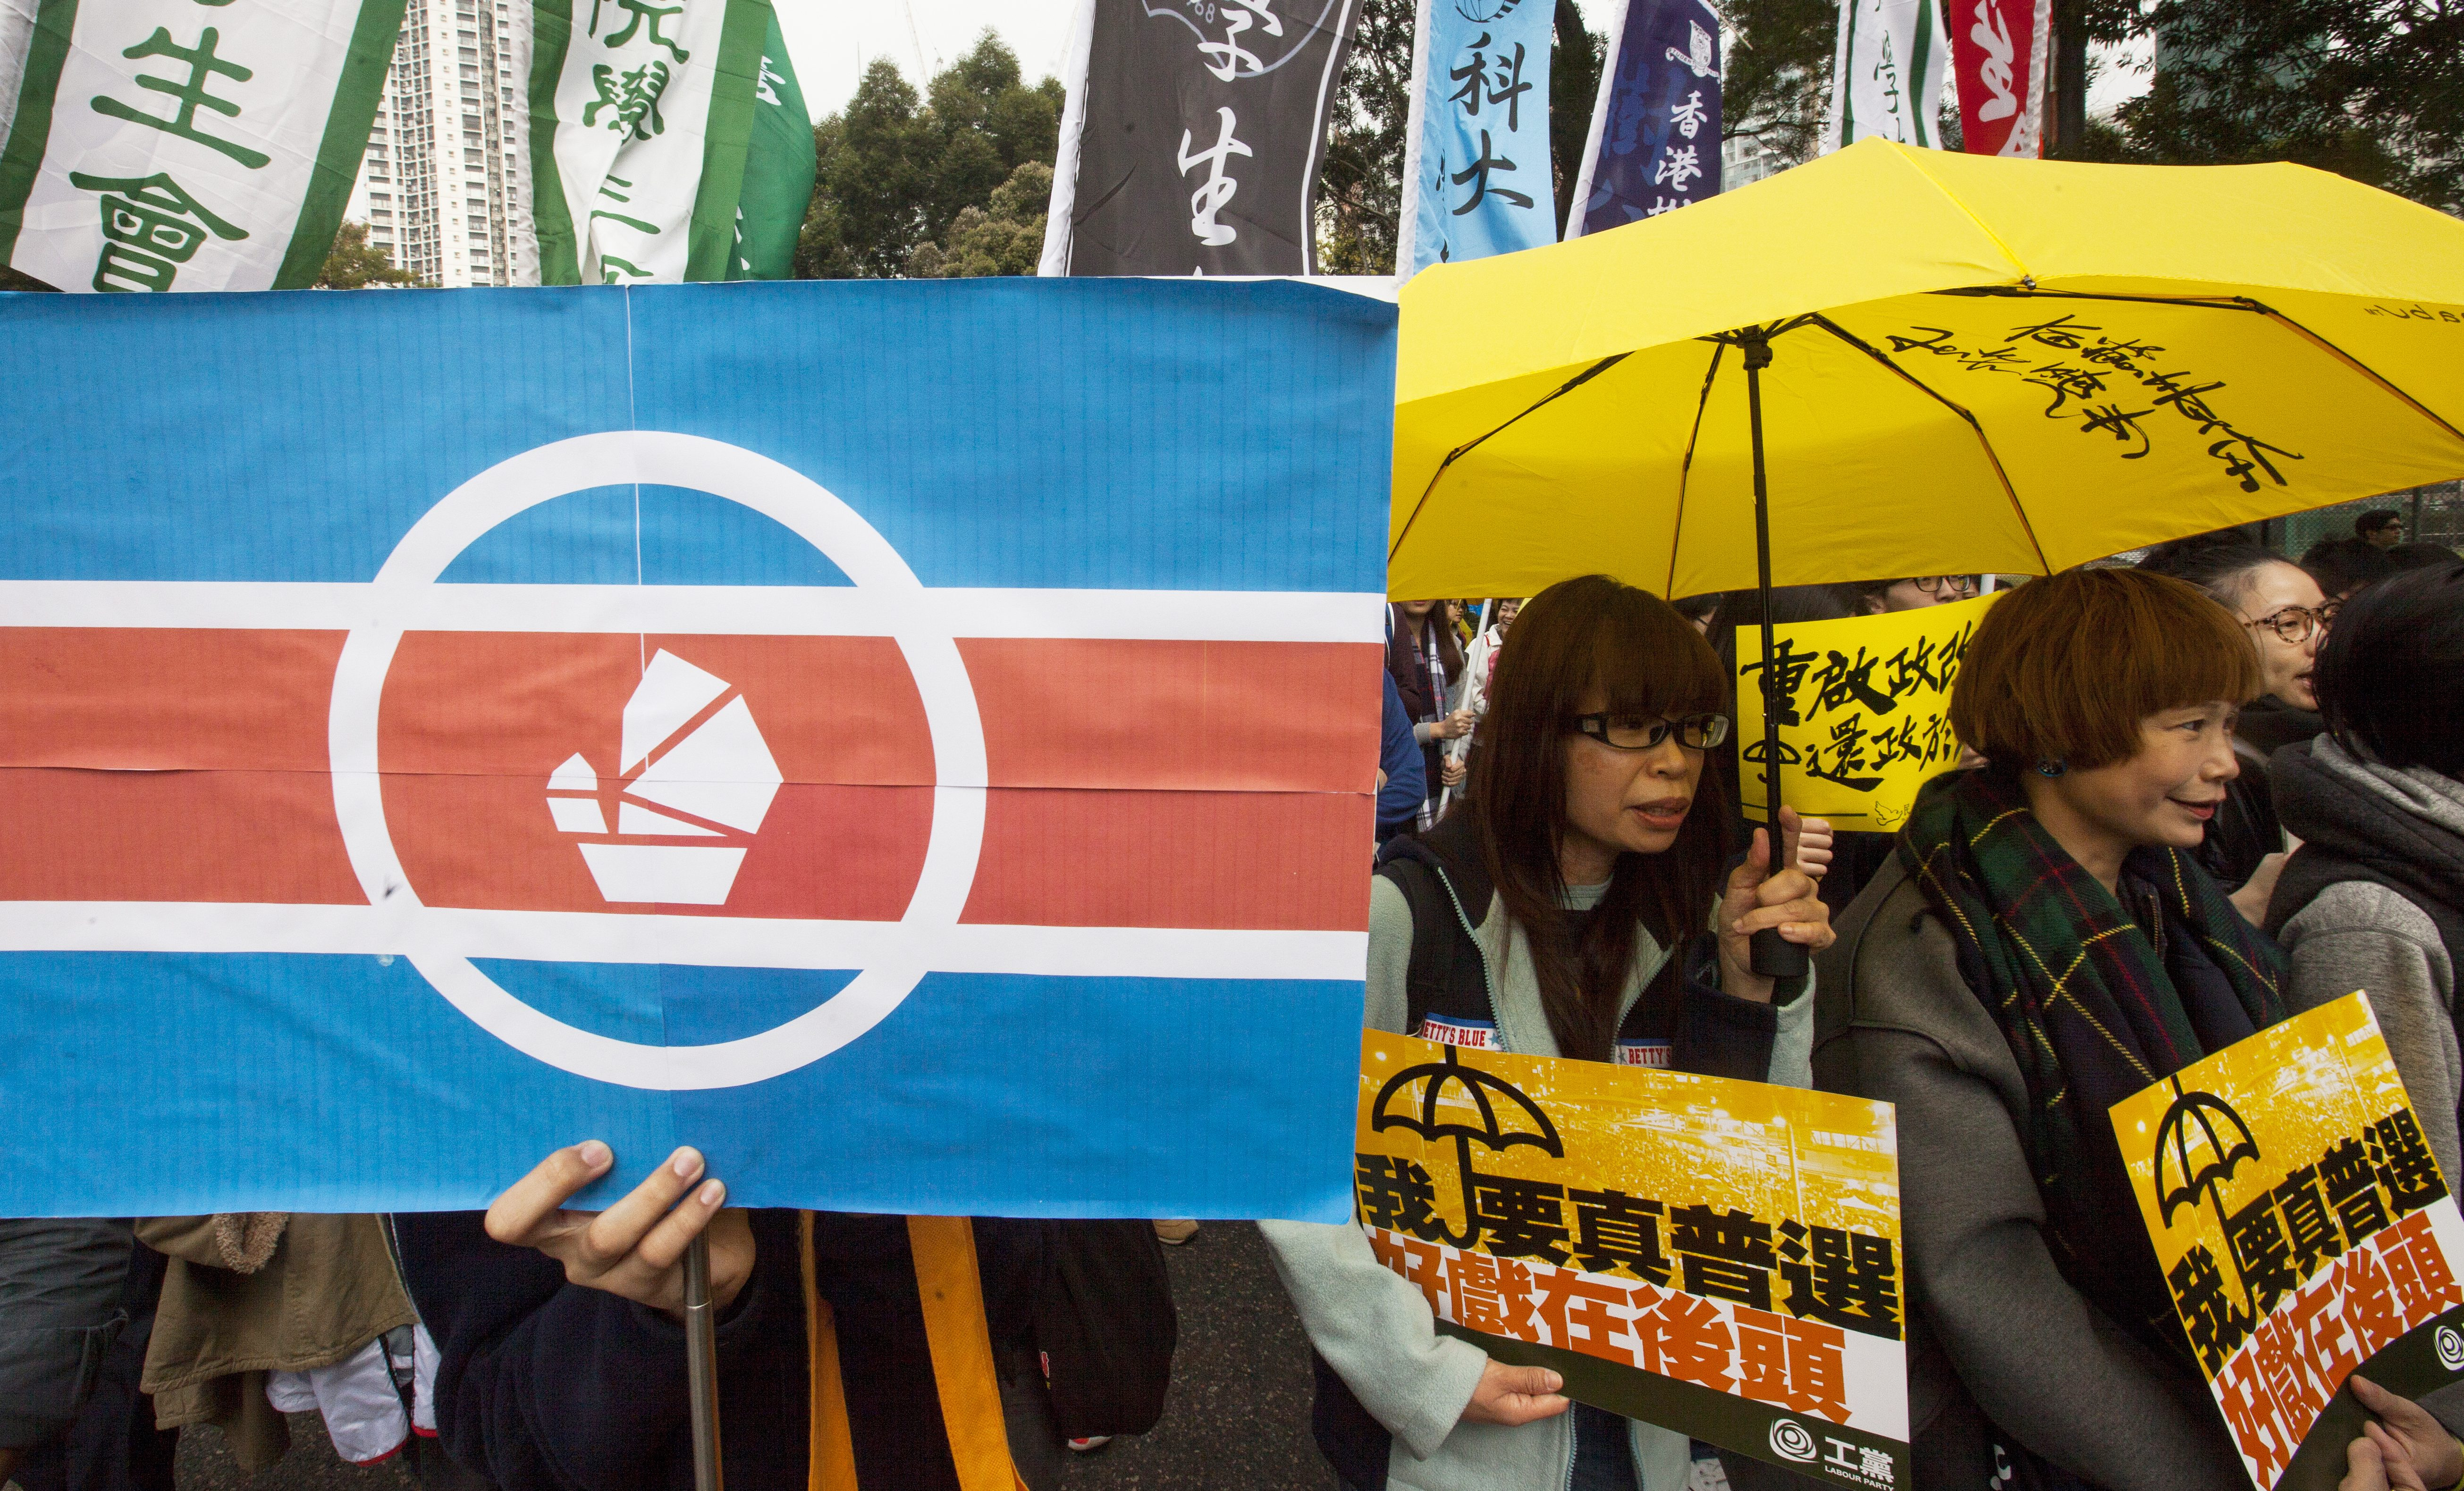 A protestor shows a mock North Korean flag with a Hong Kong junk boat placed in the middle to symbolize what they believe is Hong Kong's repressive political regime, as they march through the streets calling for genuine universal suffrage, Hong Kong, 1 February, 2015.